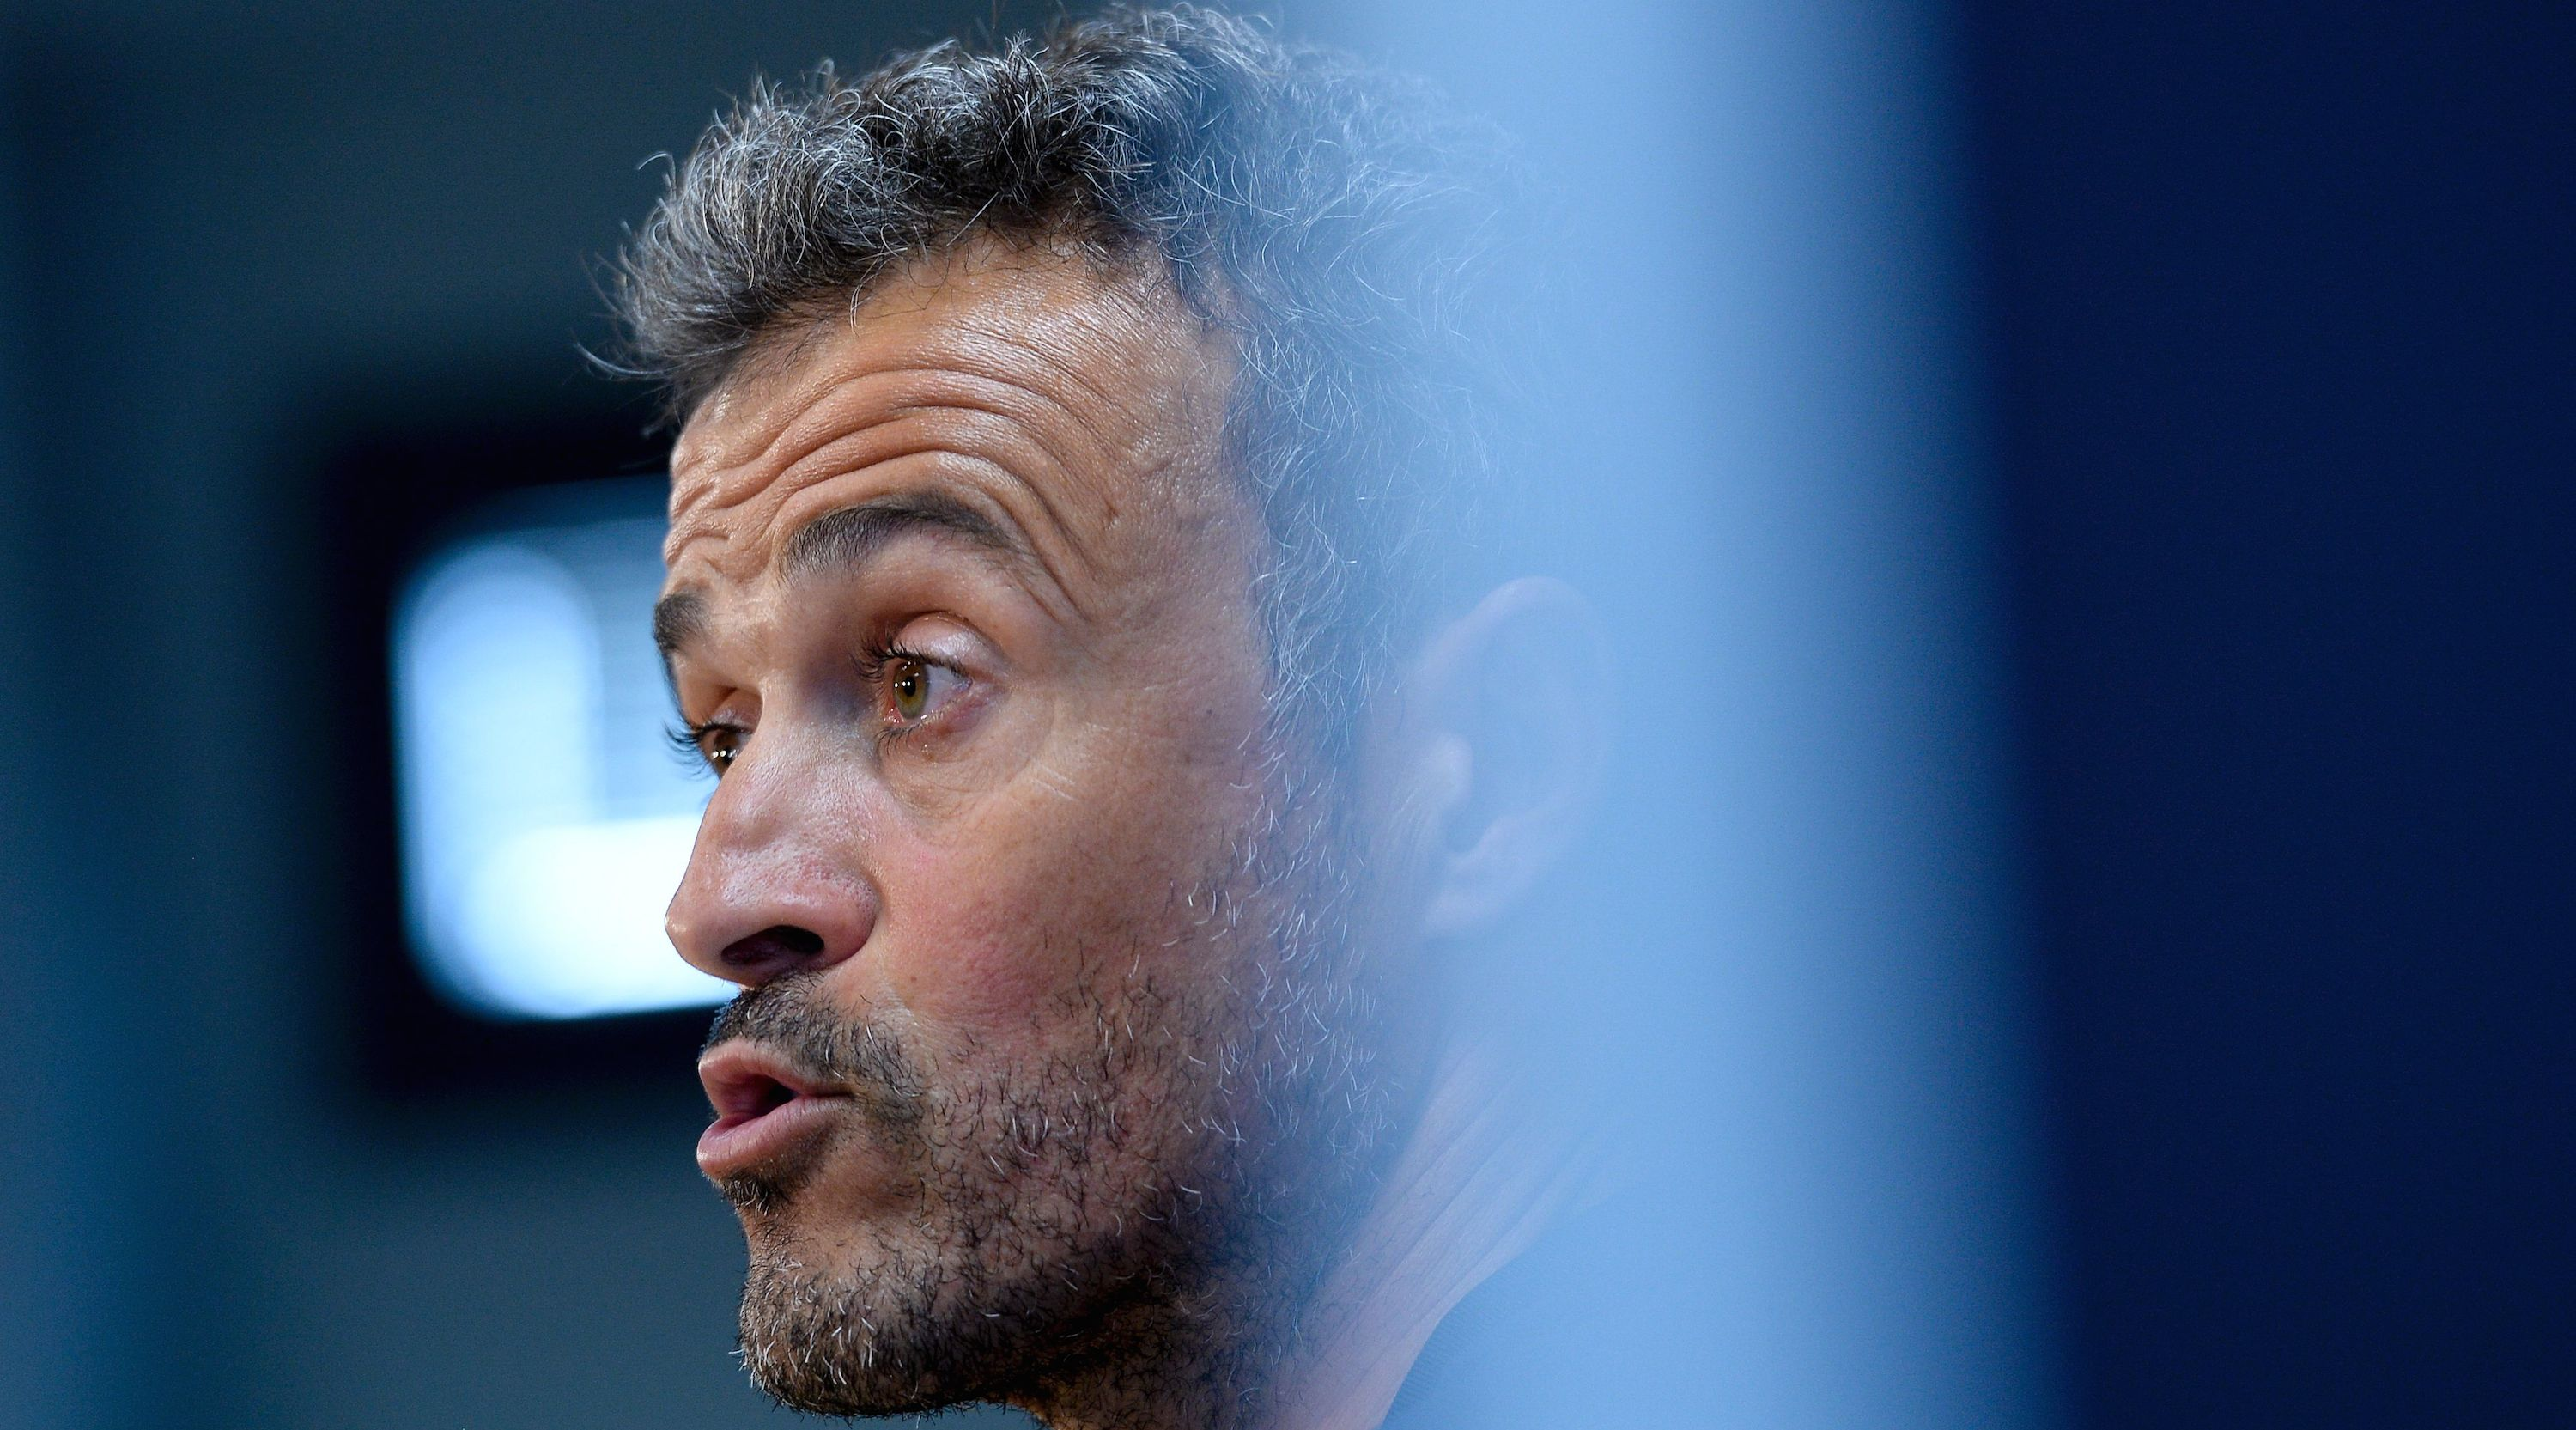 Barcelona's coach Luis Enrique answers to journalist during a press conference at the Sports Center FC Barcelona Joan Gamper in Sant Joan Despi, near Barcelona on September 20, 2016. / AFP / JOSEP LAGO (Photo credit should read JOSEP LAGO/AFP/Getty Images)